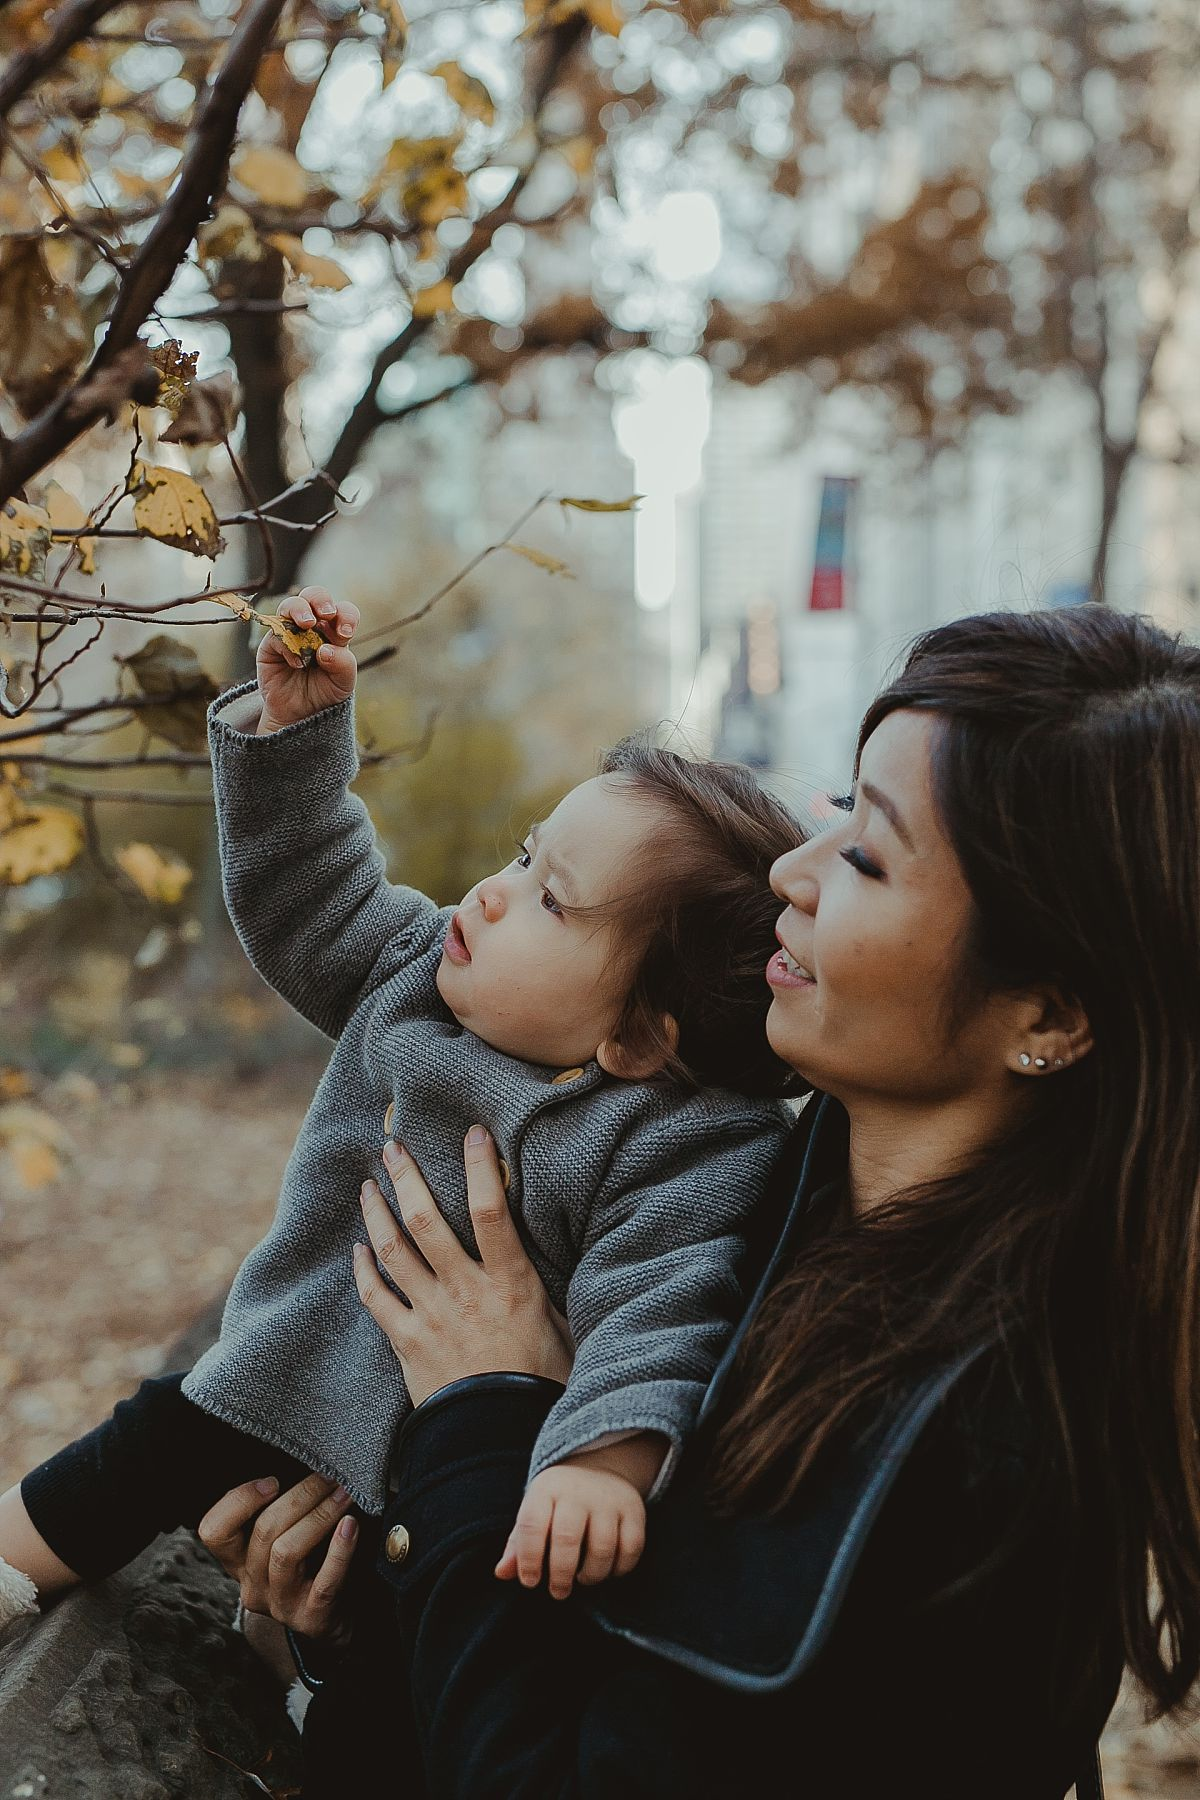 mom and daughter playing with tree leaves at the bottom of central park on chilly winters day. photo by nyc family photographer krystil mcdowall